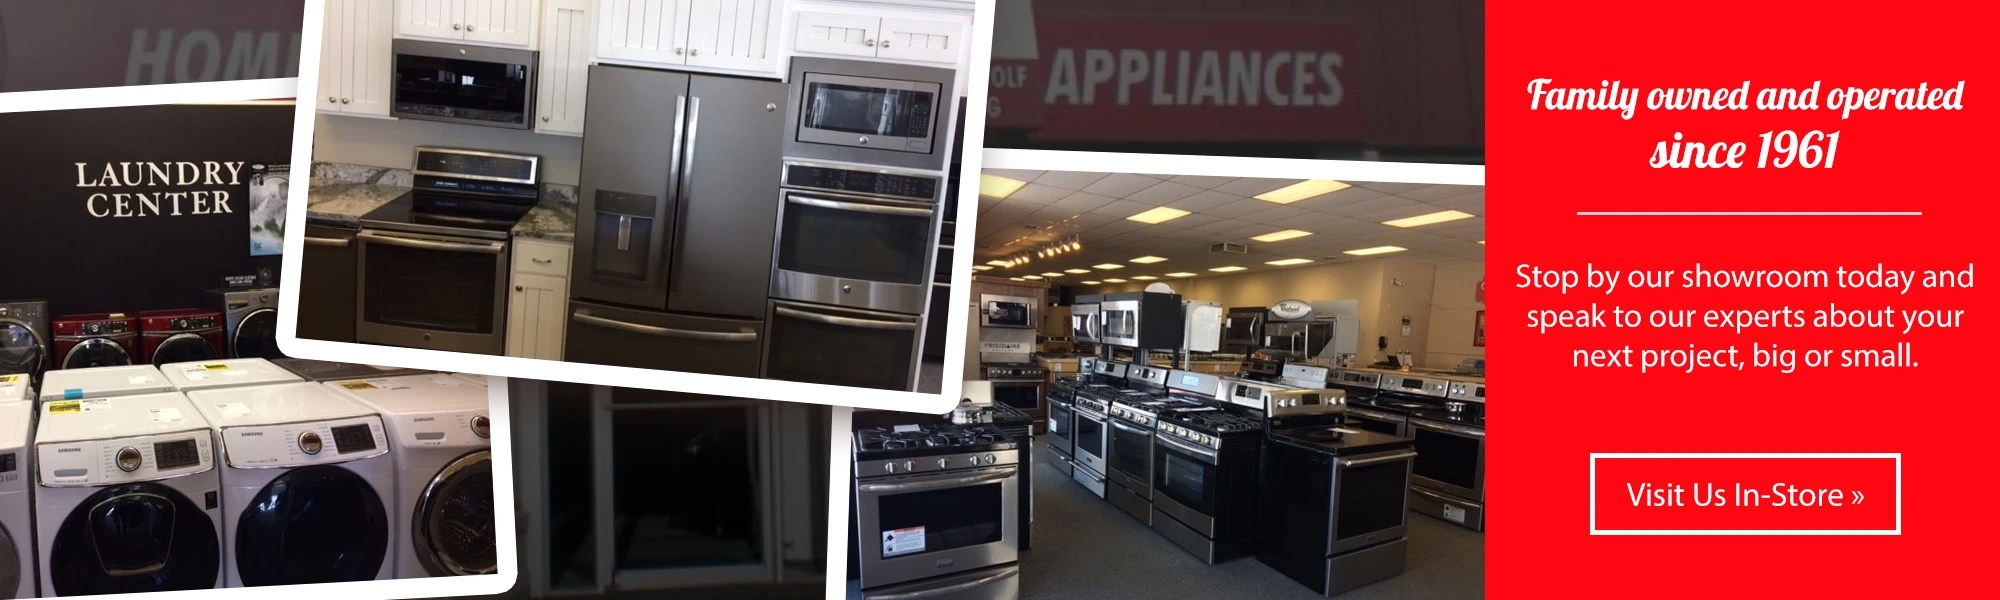 In Home Electronics Dennings Appliance Home And Kitchen Appliances Idaho Falls Id